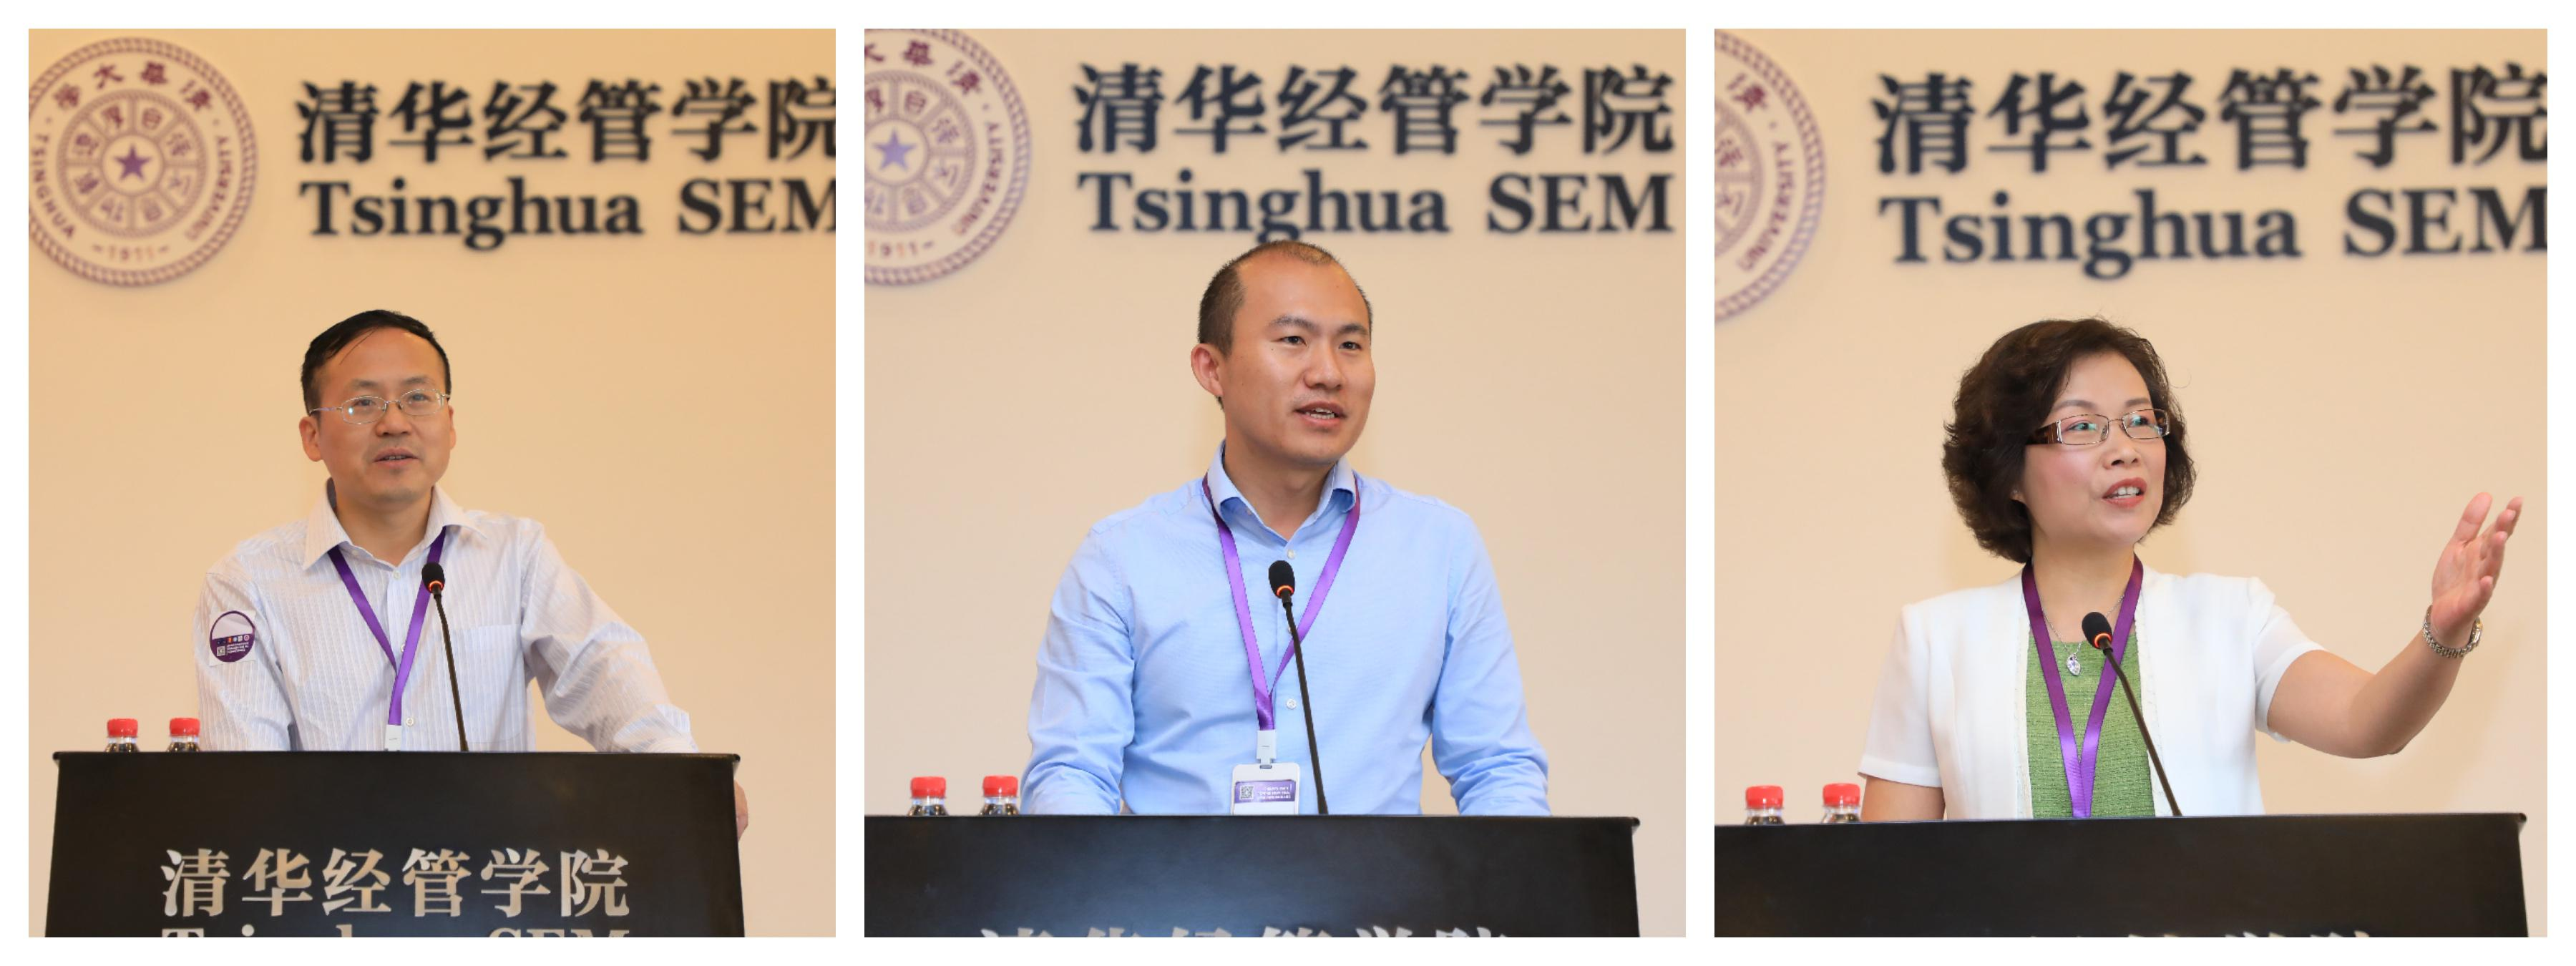 CEA Conference at Tsinghua University, China, 2018